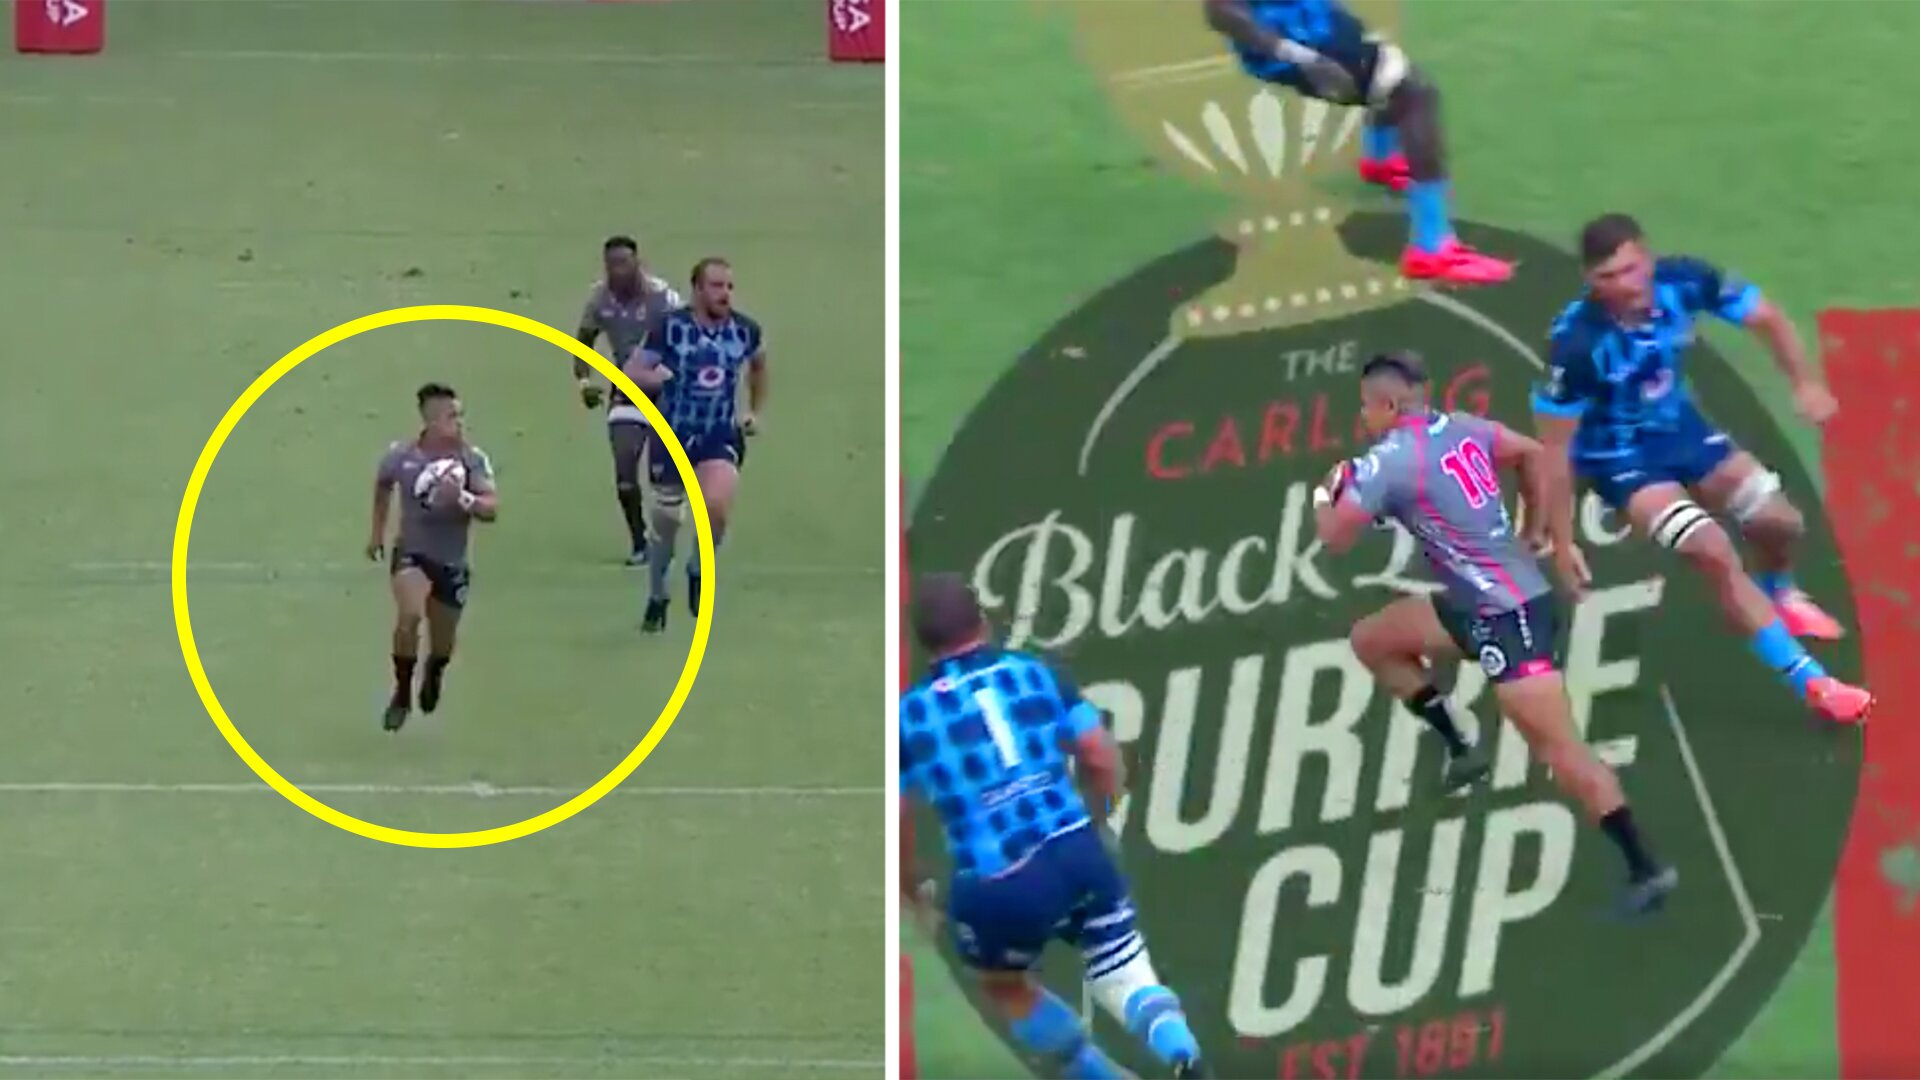 Fans calling on Super Rugby clubs to sign Devon Williams after stunning solo try in Currie Cup